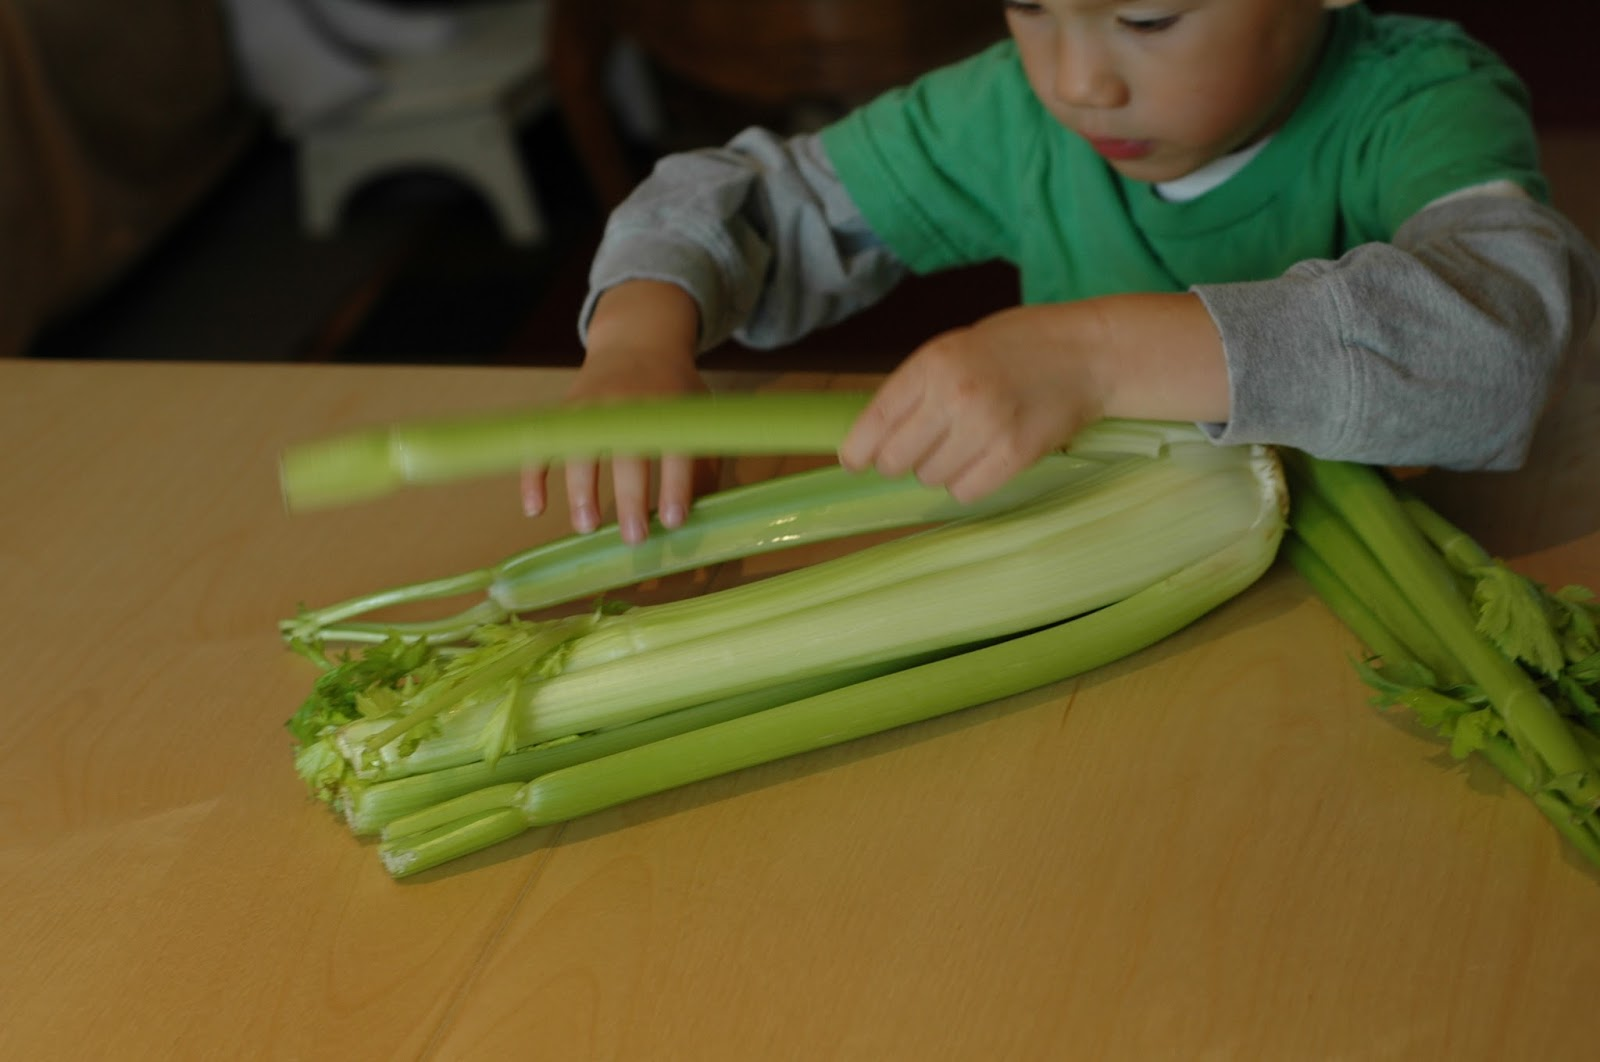 celery project Learn about capillary action with this simple and colorful rainbow celery experiment and craft.